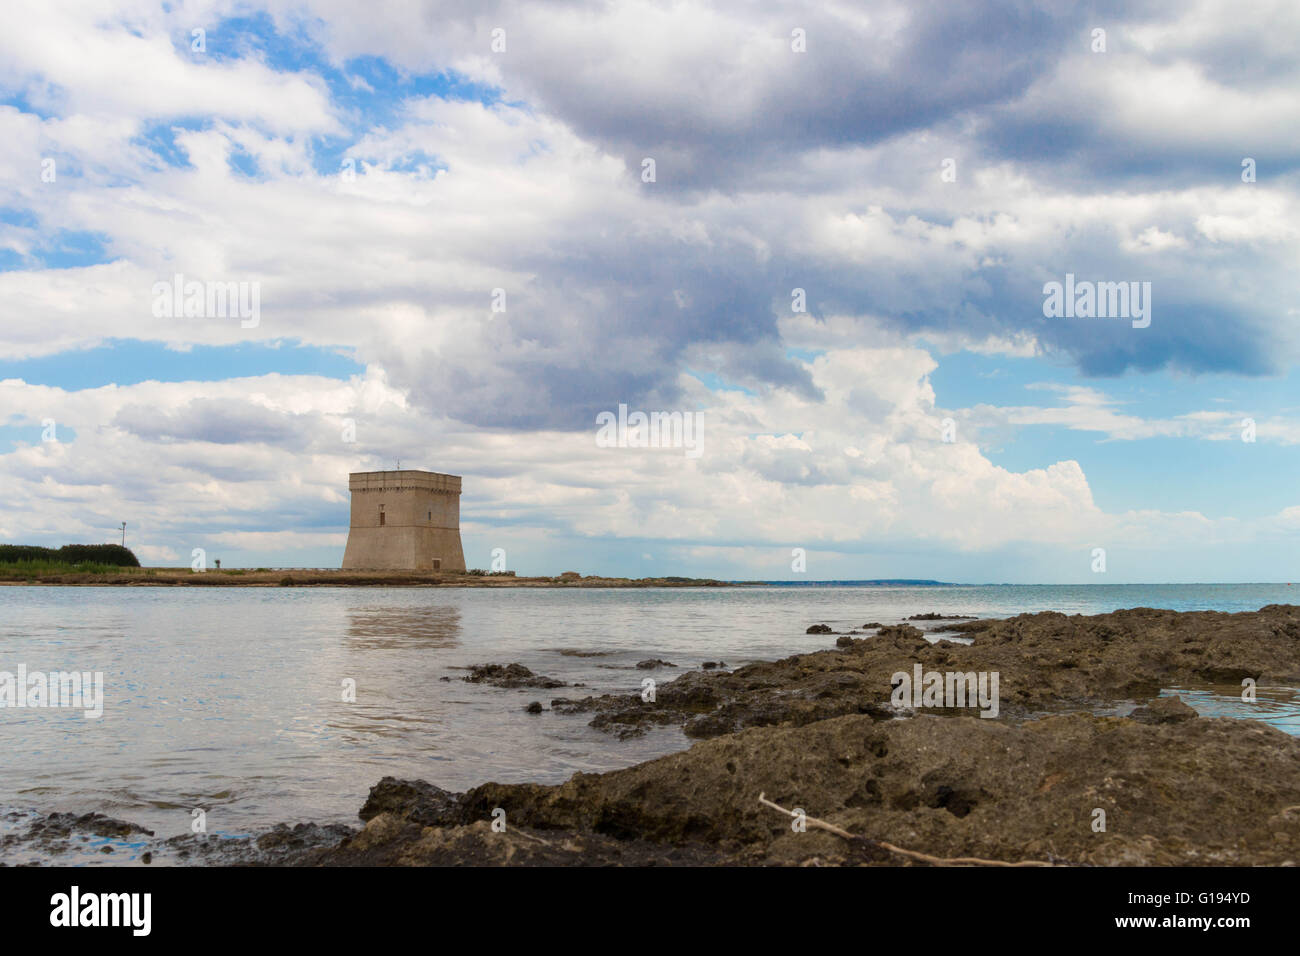 Chianca Tower 3 - Stock Image